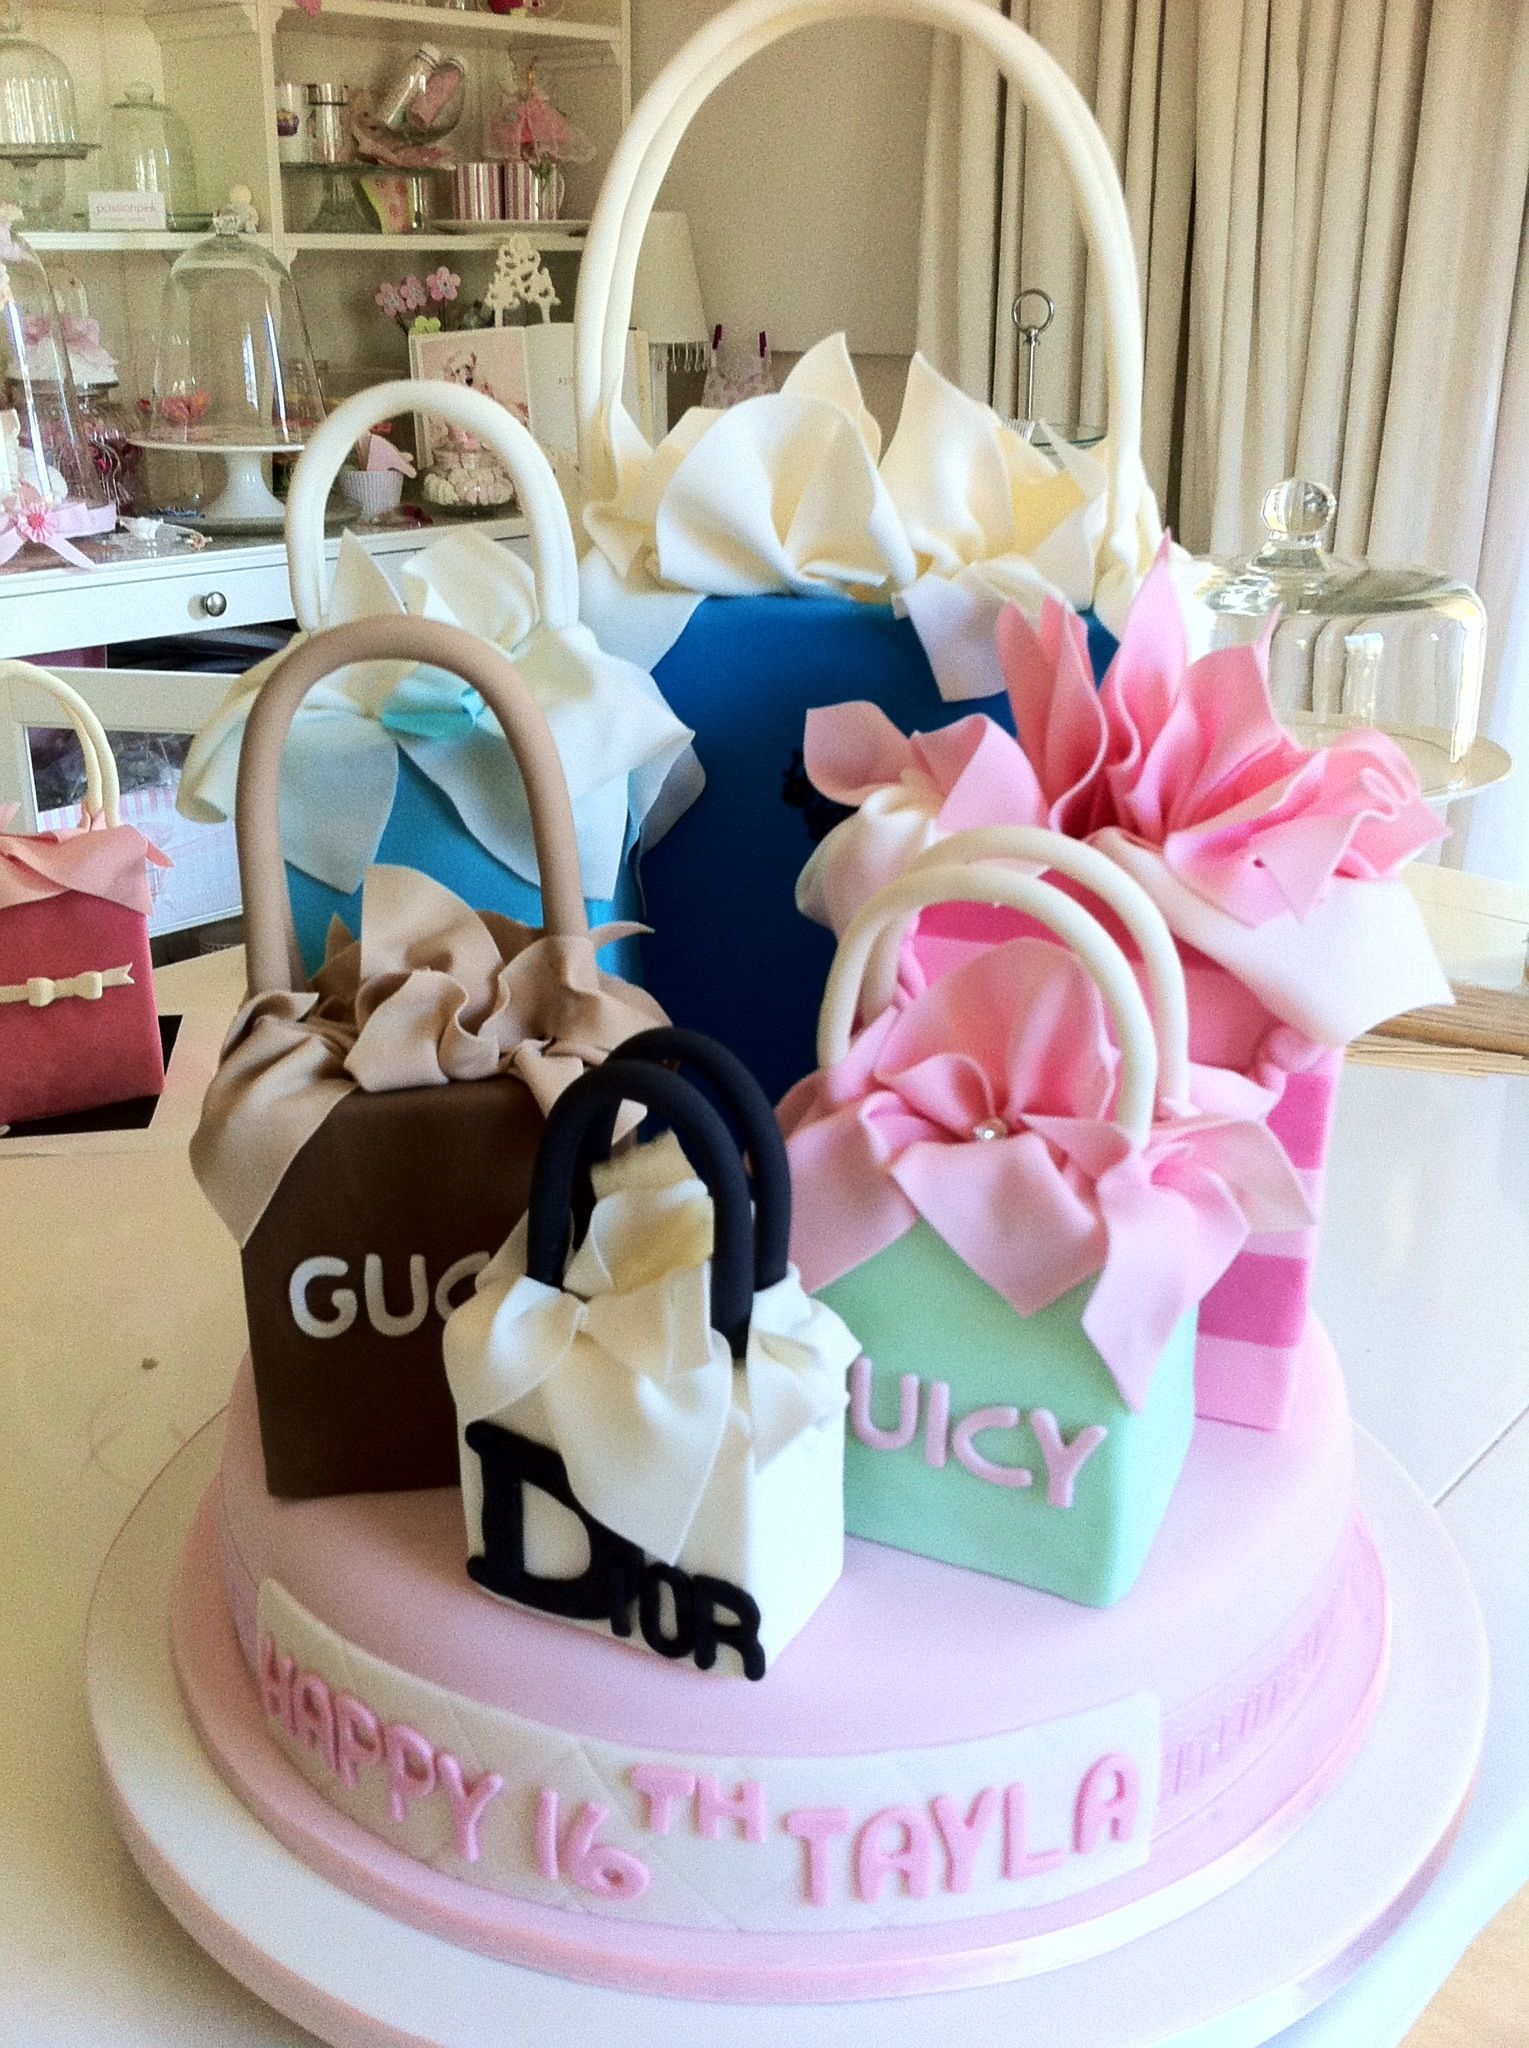 Gucci Dior Juicy Etc Clever Cake From Httpmedia Cache Ak0